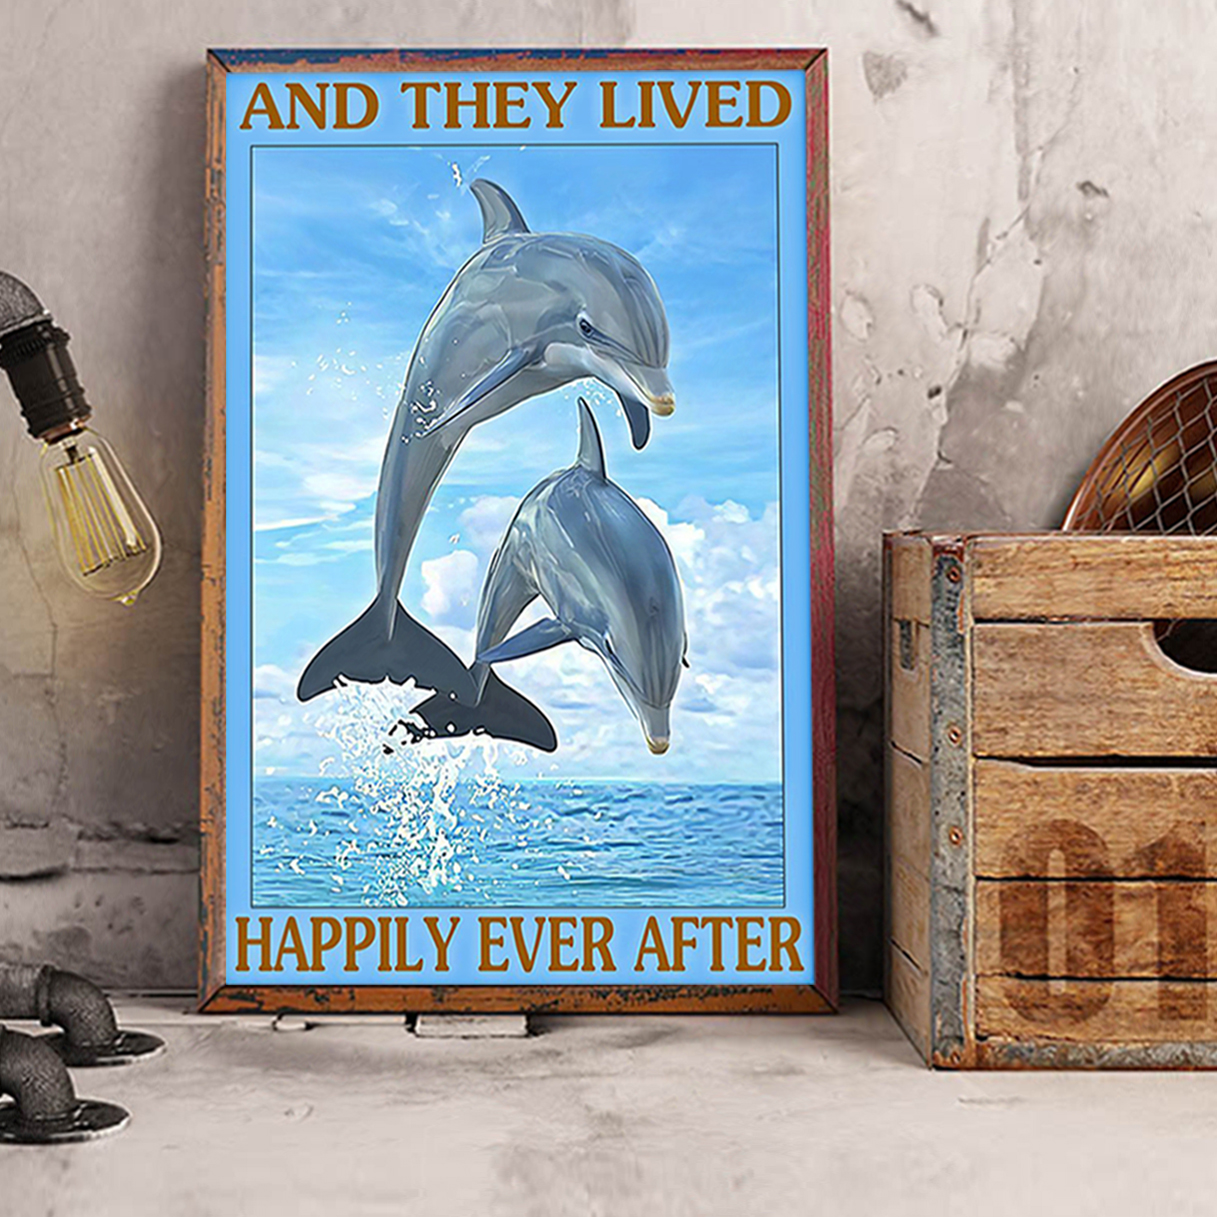 Dolphin and they lived happily ever after poster A3